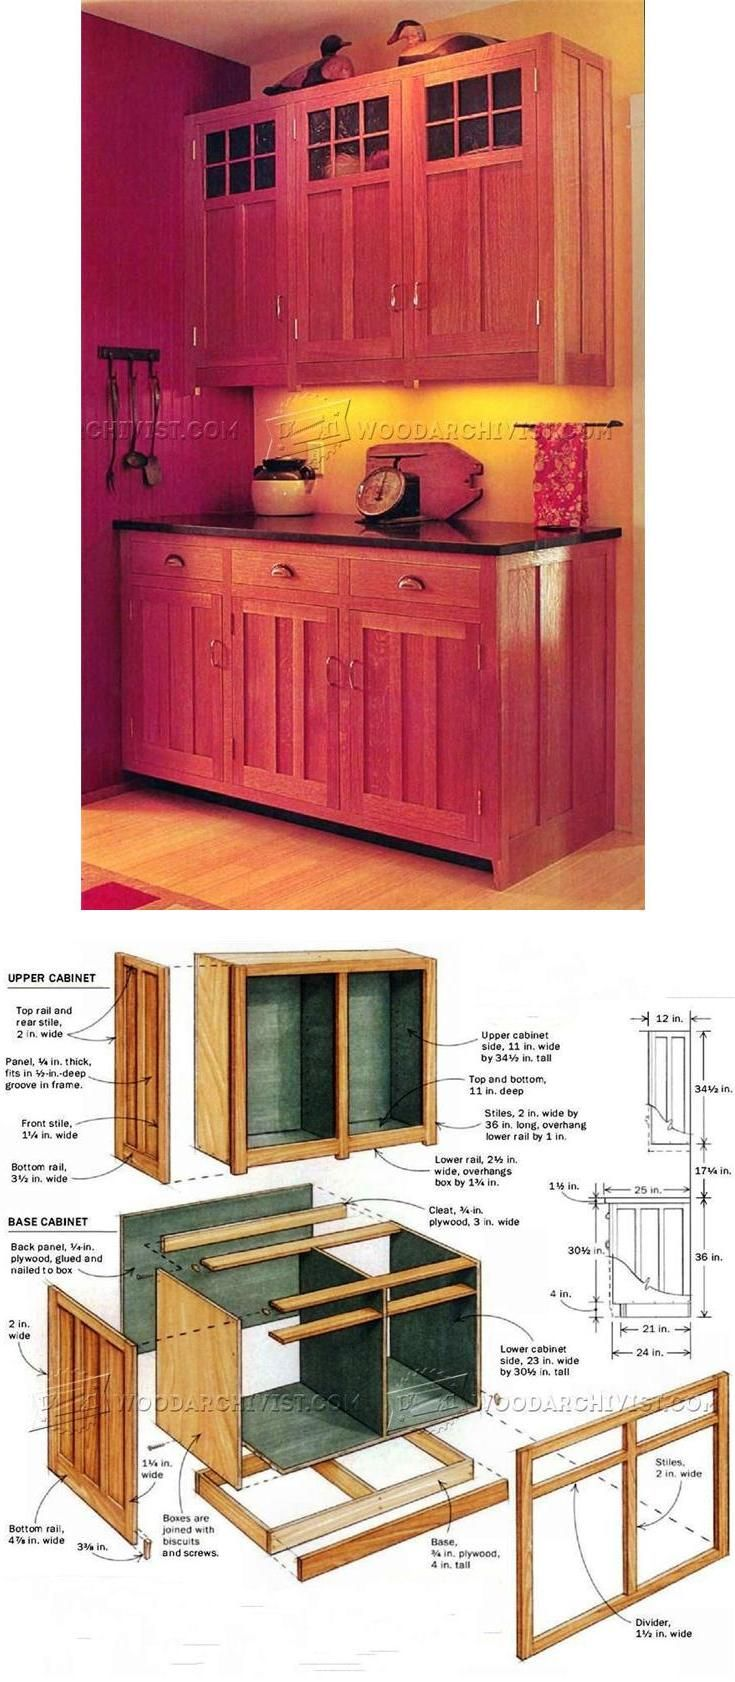 kitchen cabinets plans furniture plans and projects rh pinterest com